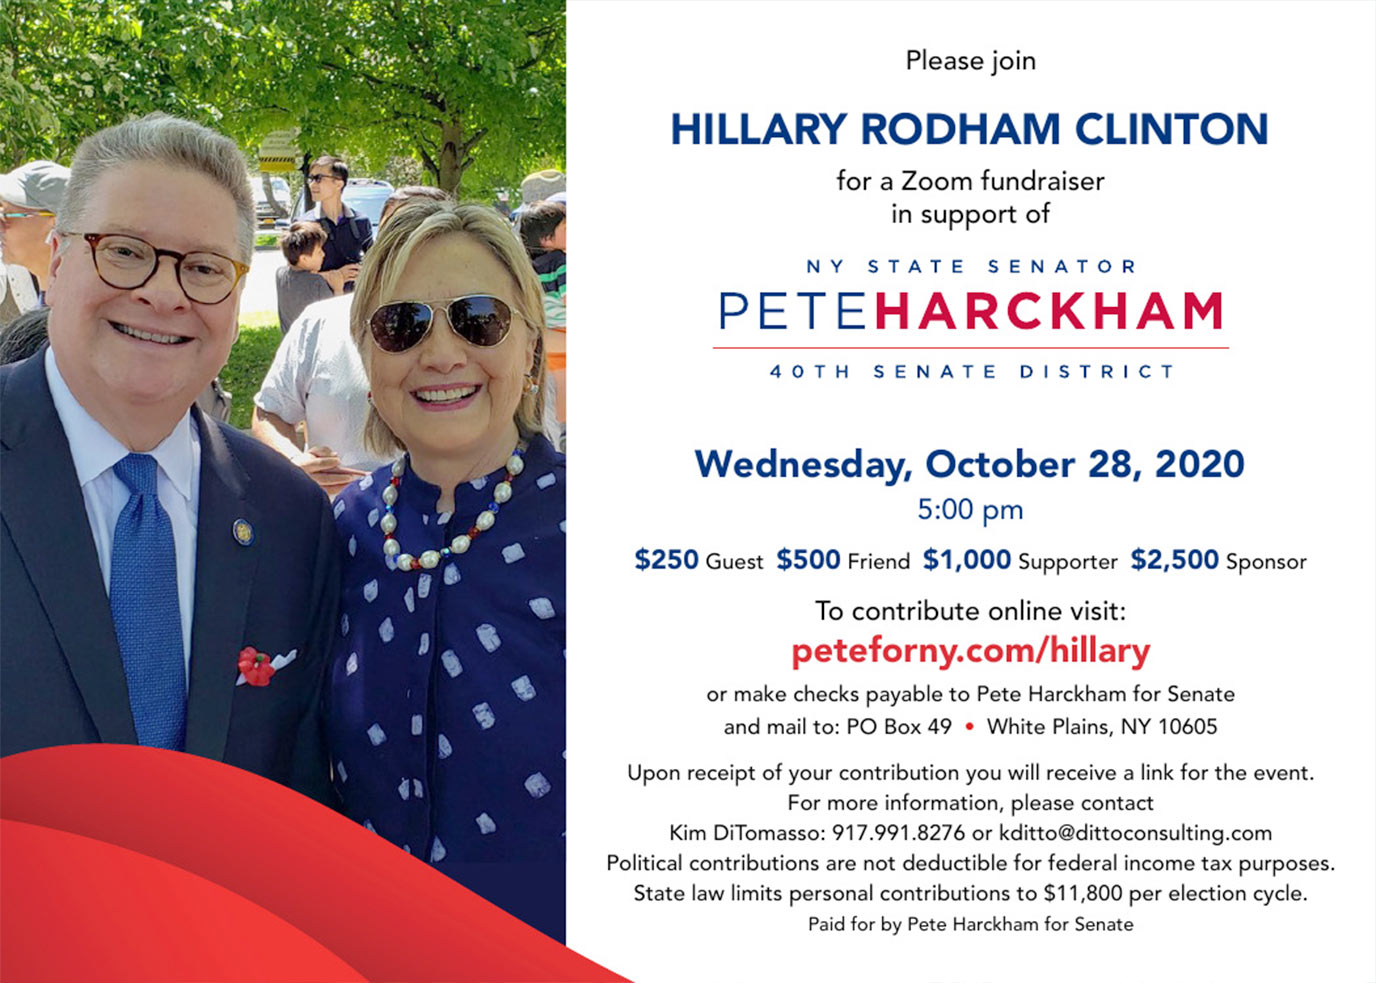 Pete Harckham with Hillary Clinton